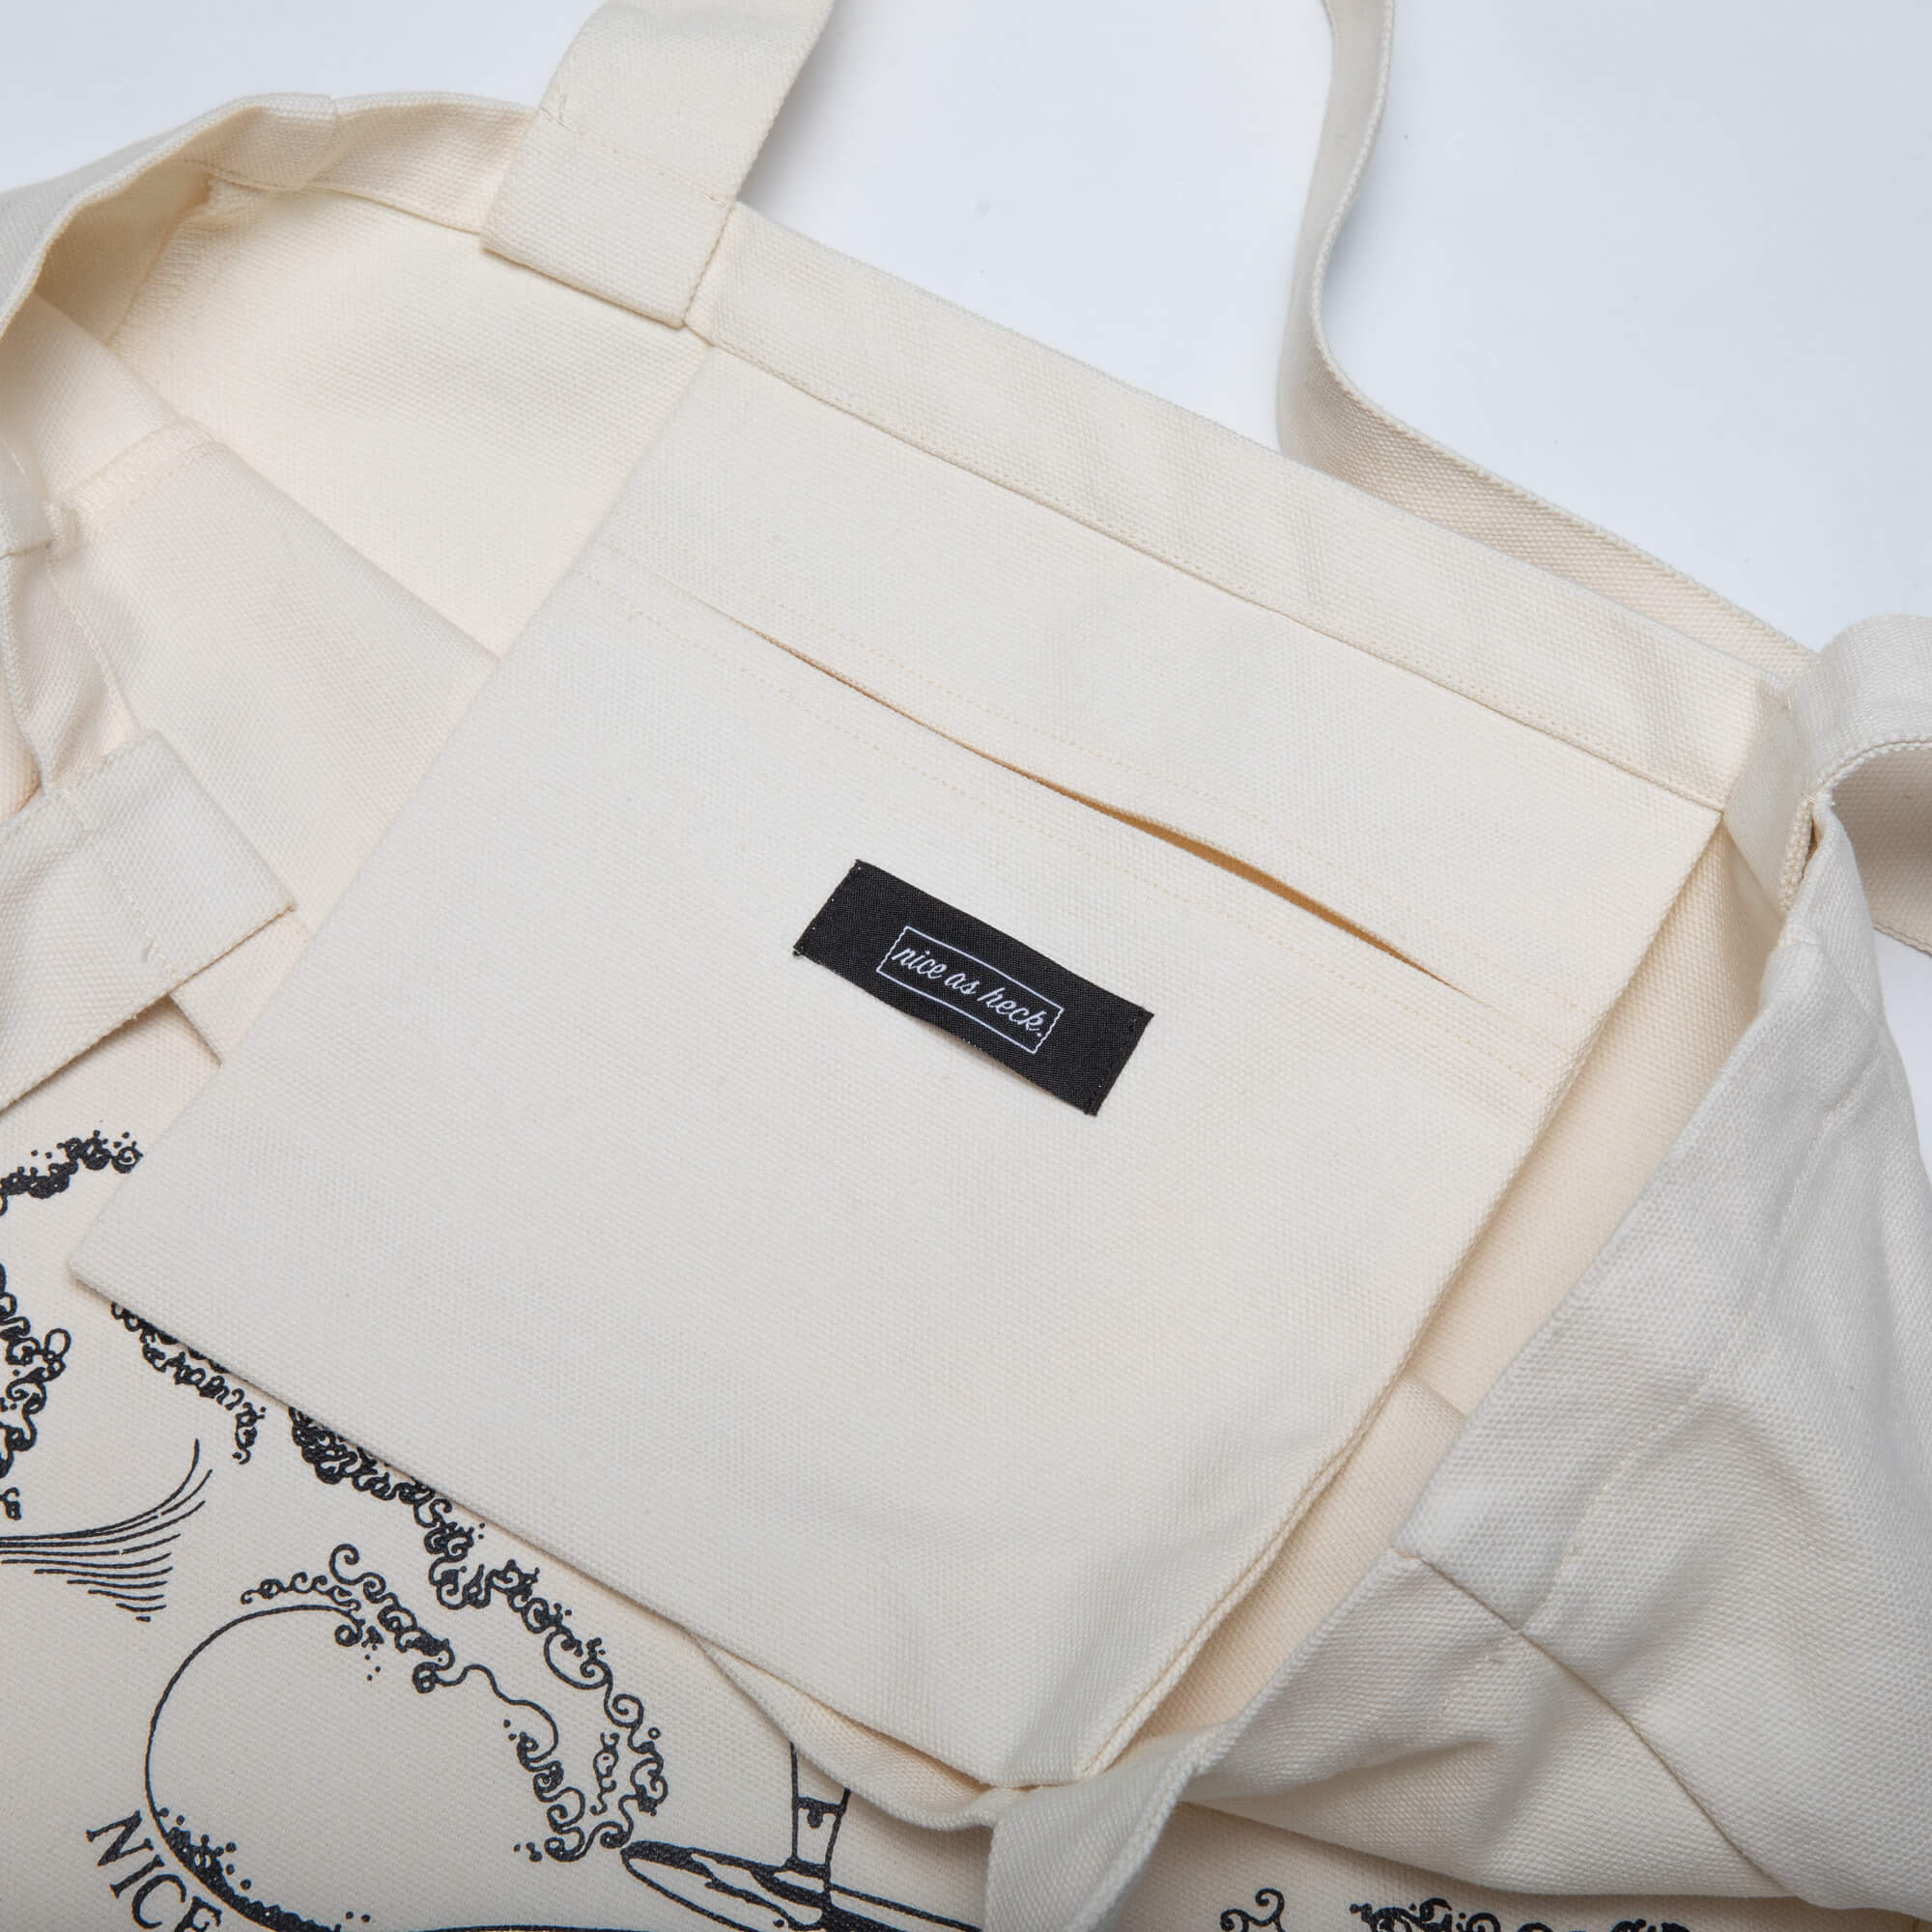 close up of the pocket inside the tote bag